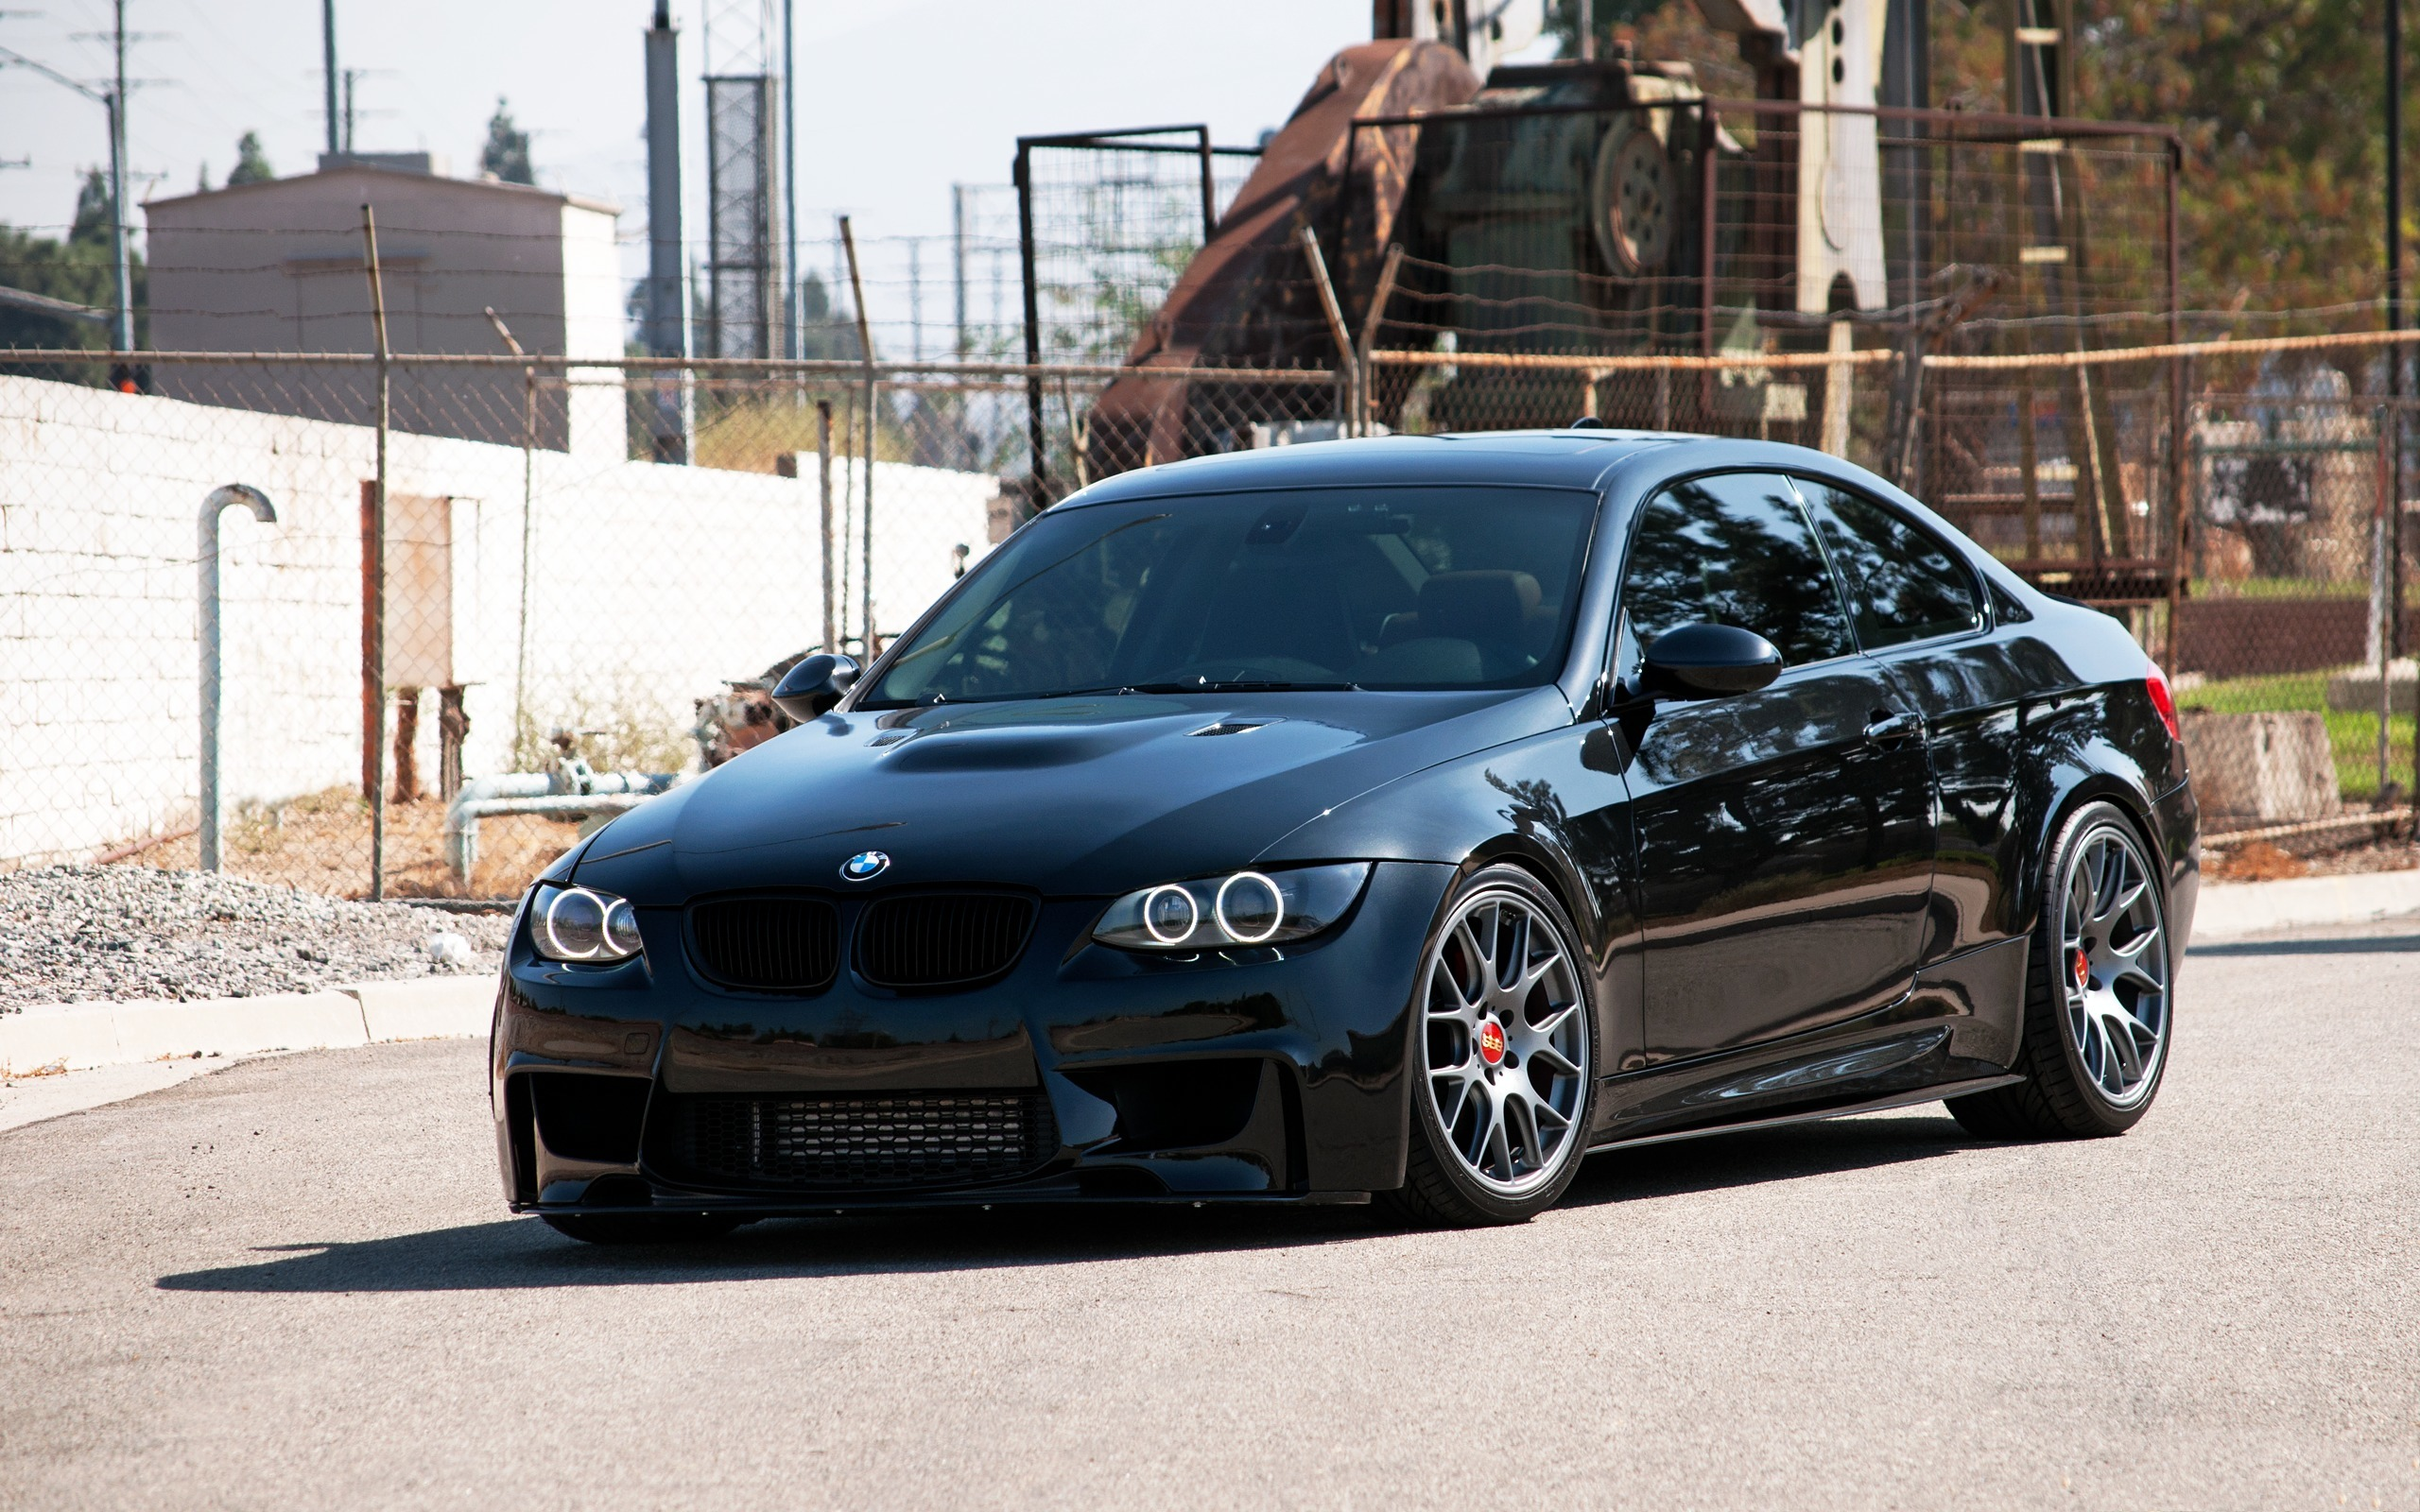 Bmw 335I Wallpapers High Quality | Download Free